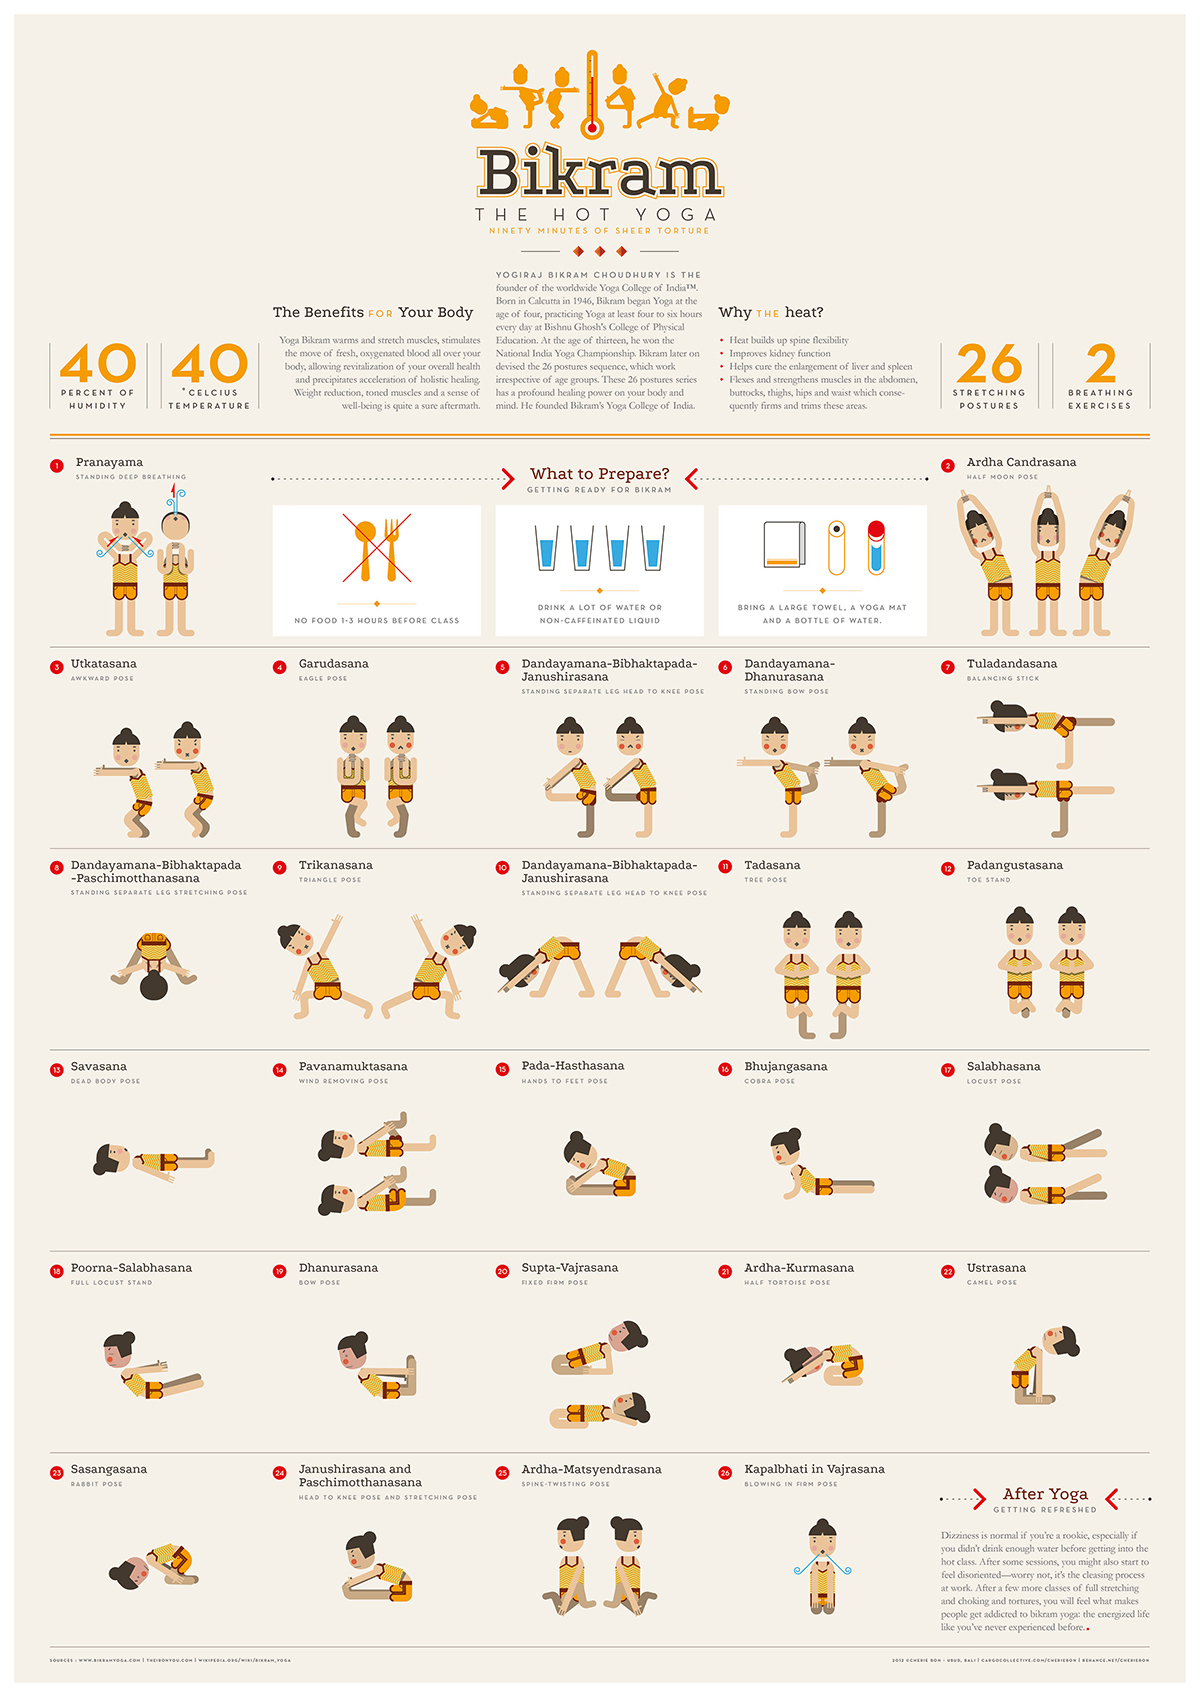 Bikram The Hot Yoga Pose Infographic Visual Ly